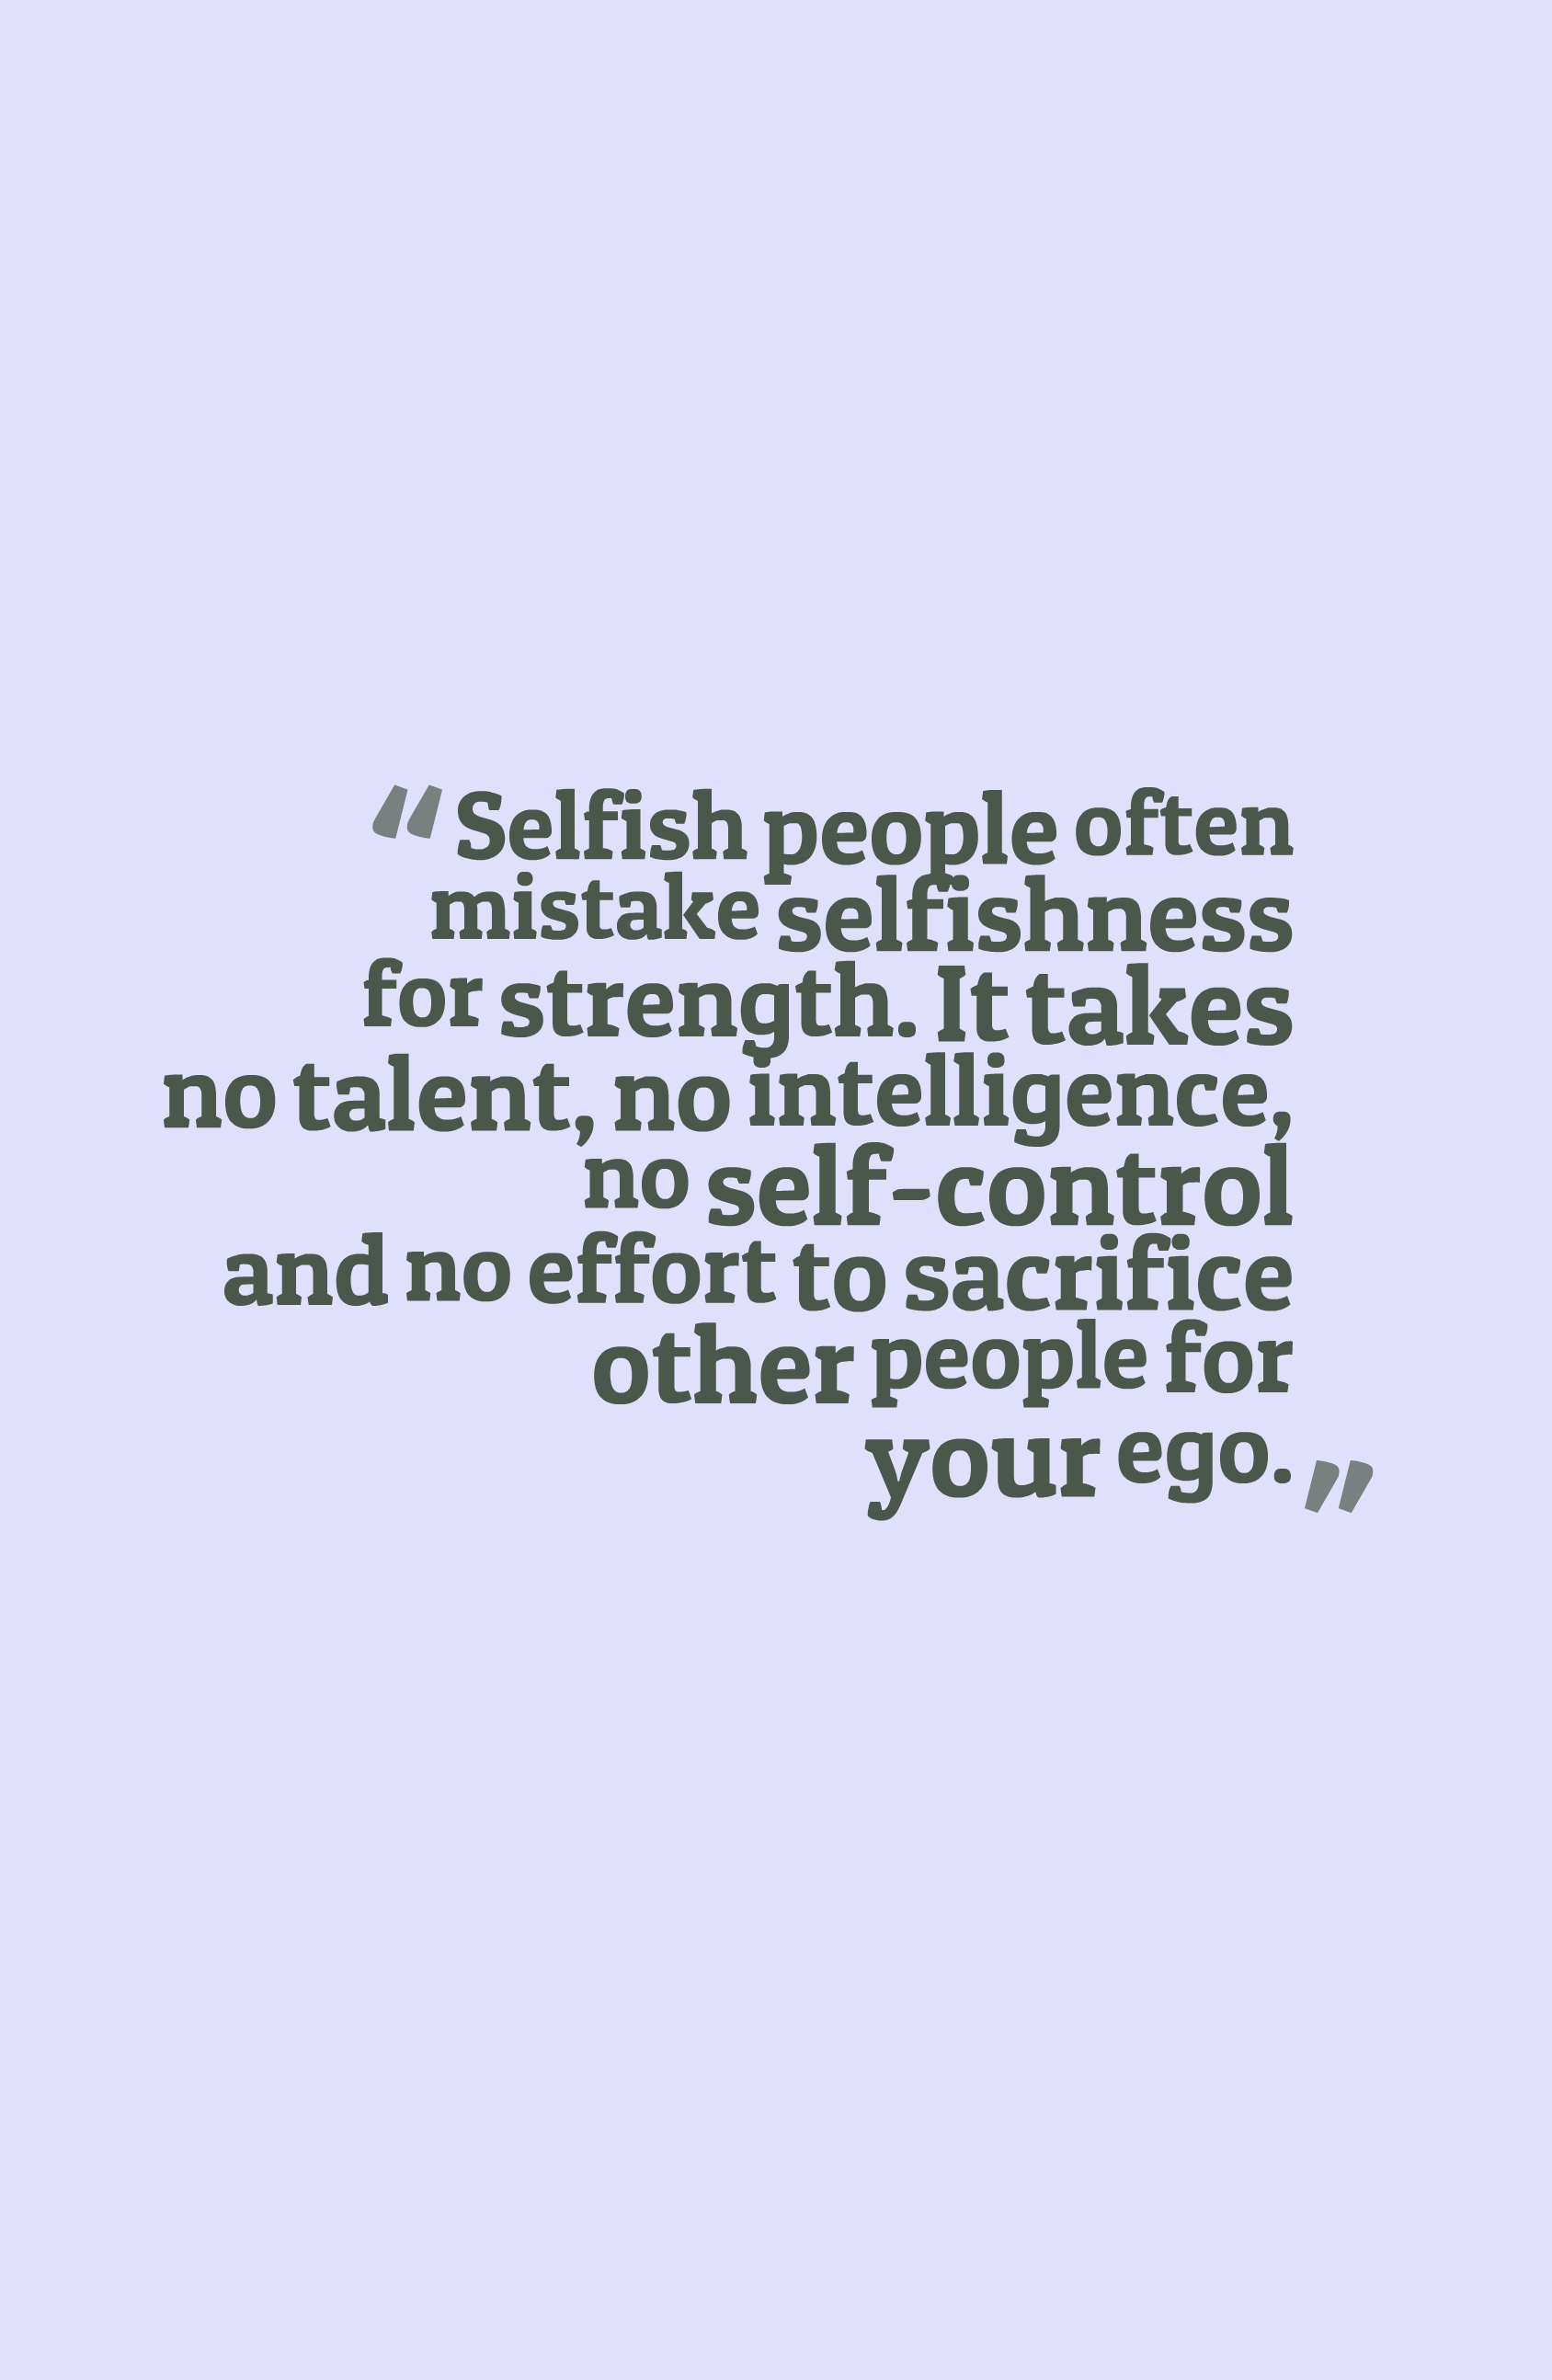 Selfishness Quotes Quotes About Selfish People Quotes About Strong People .